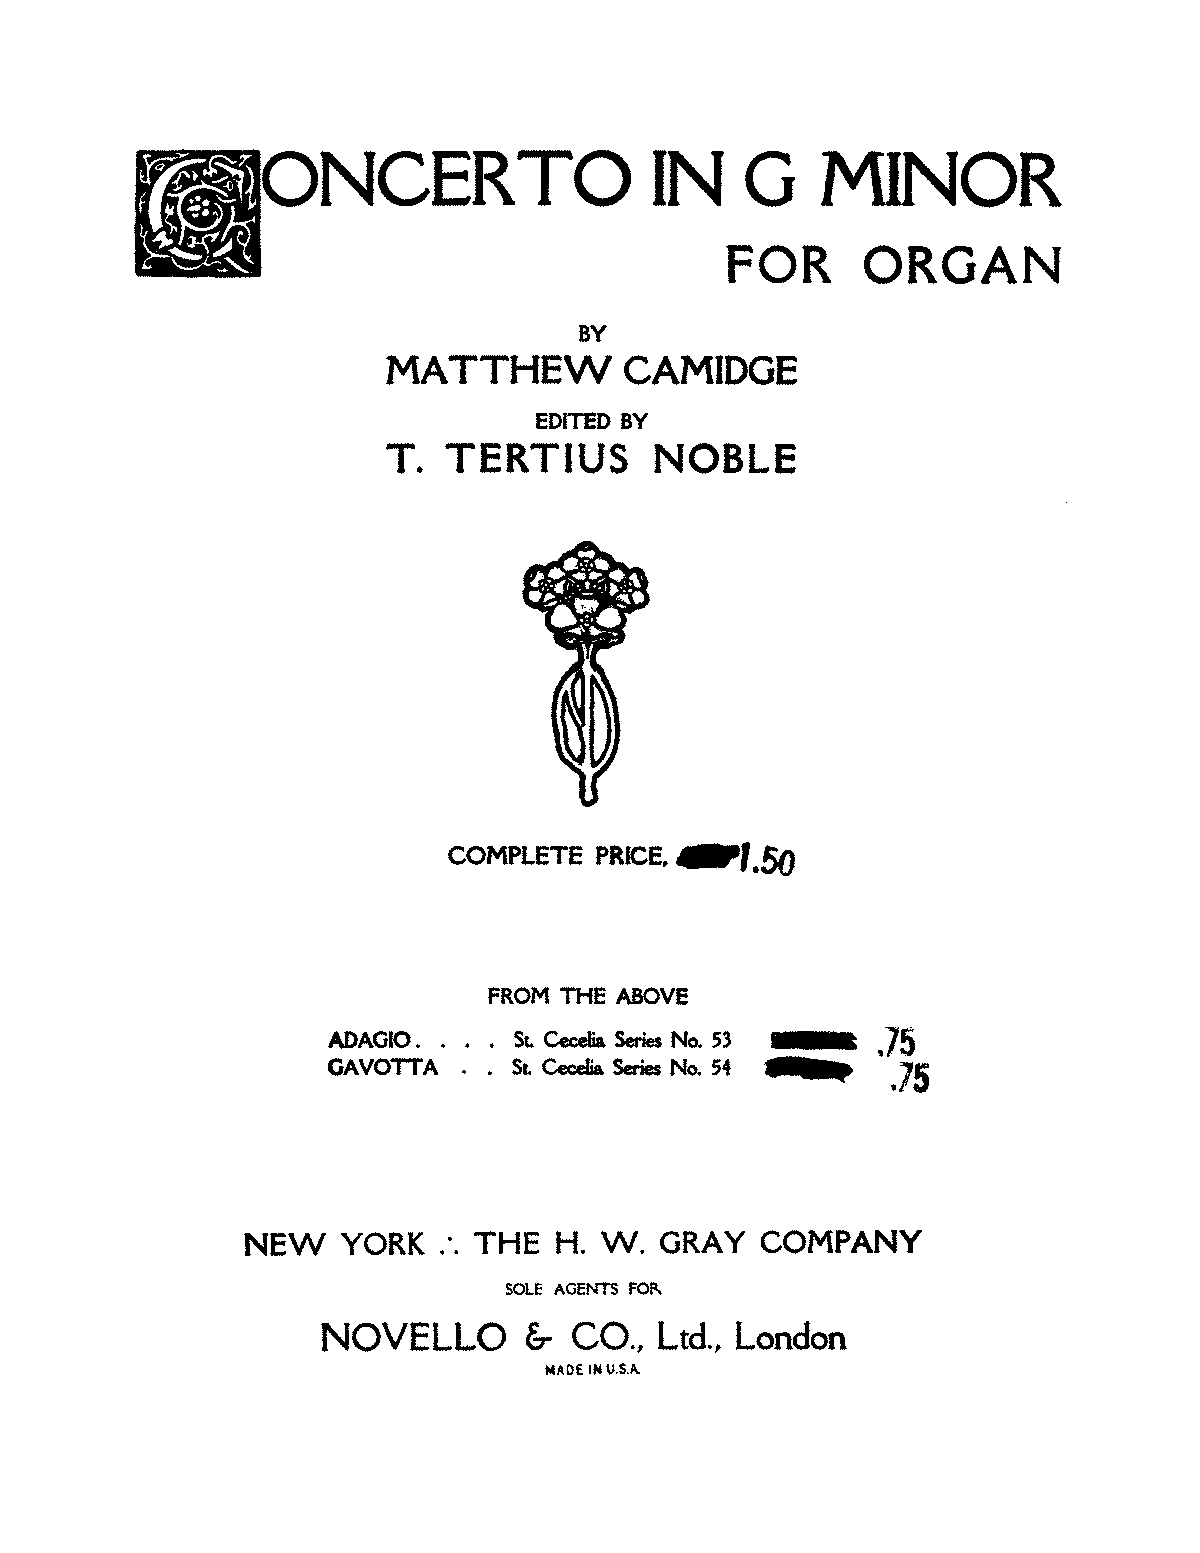 PMLP573213-Camidge Organ Concerto in g minor (ed. Noble).pdf